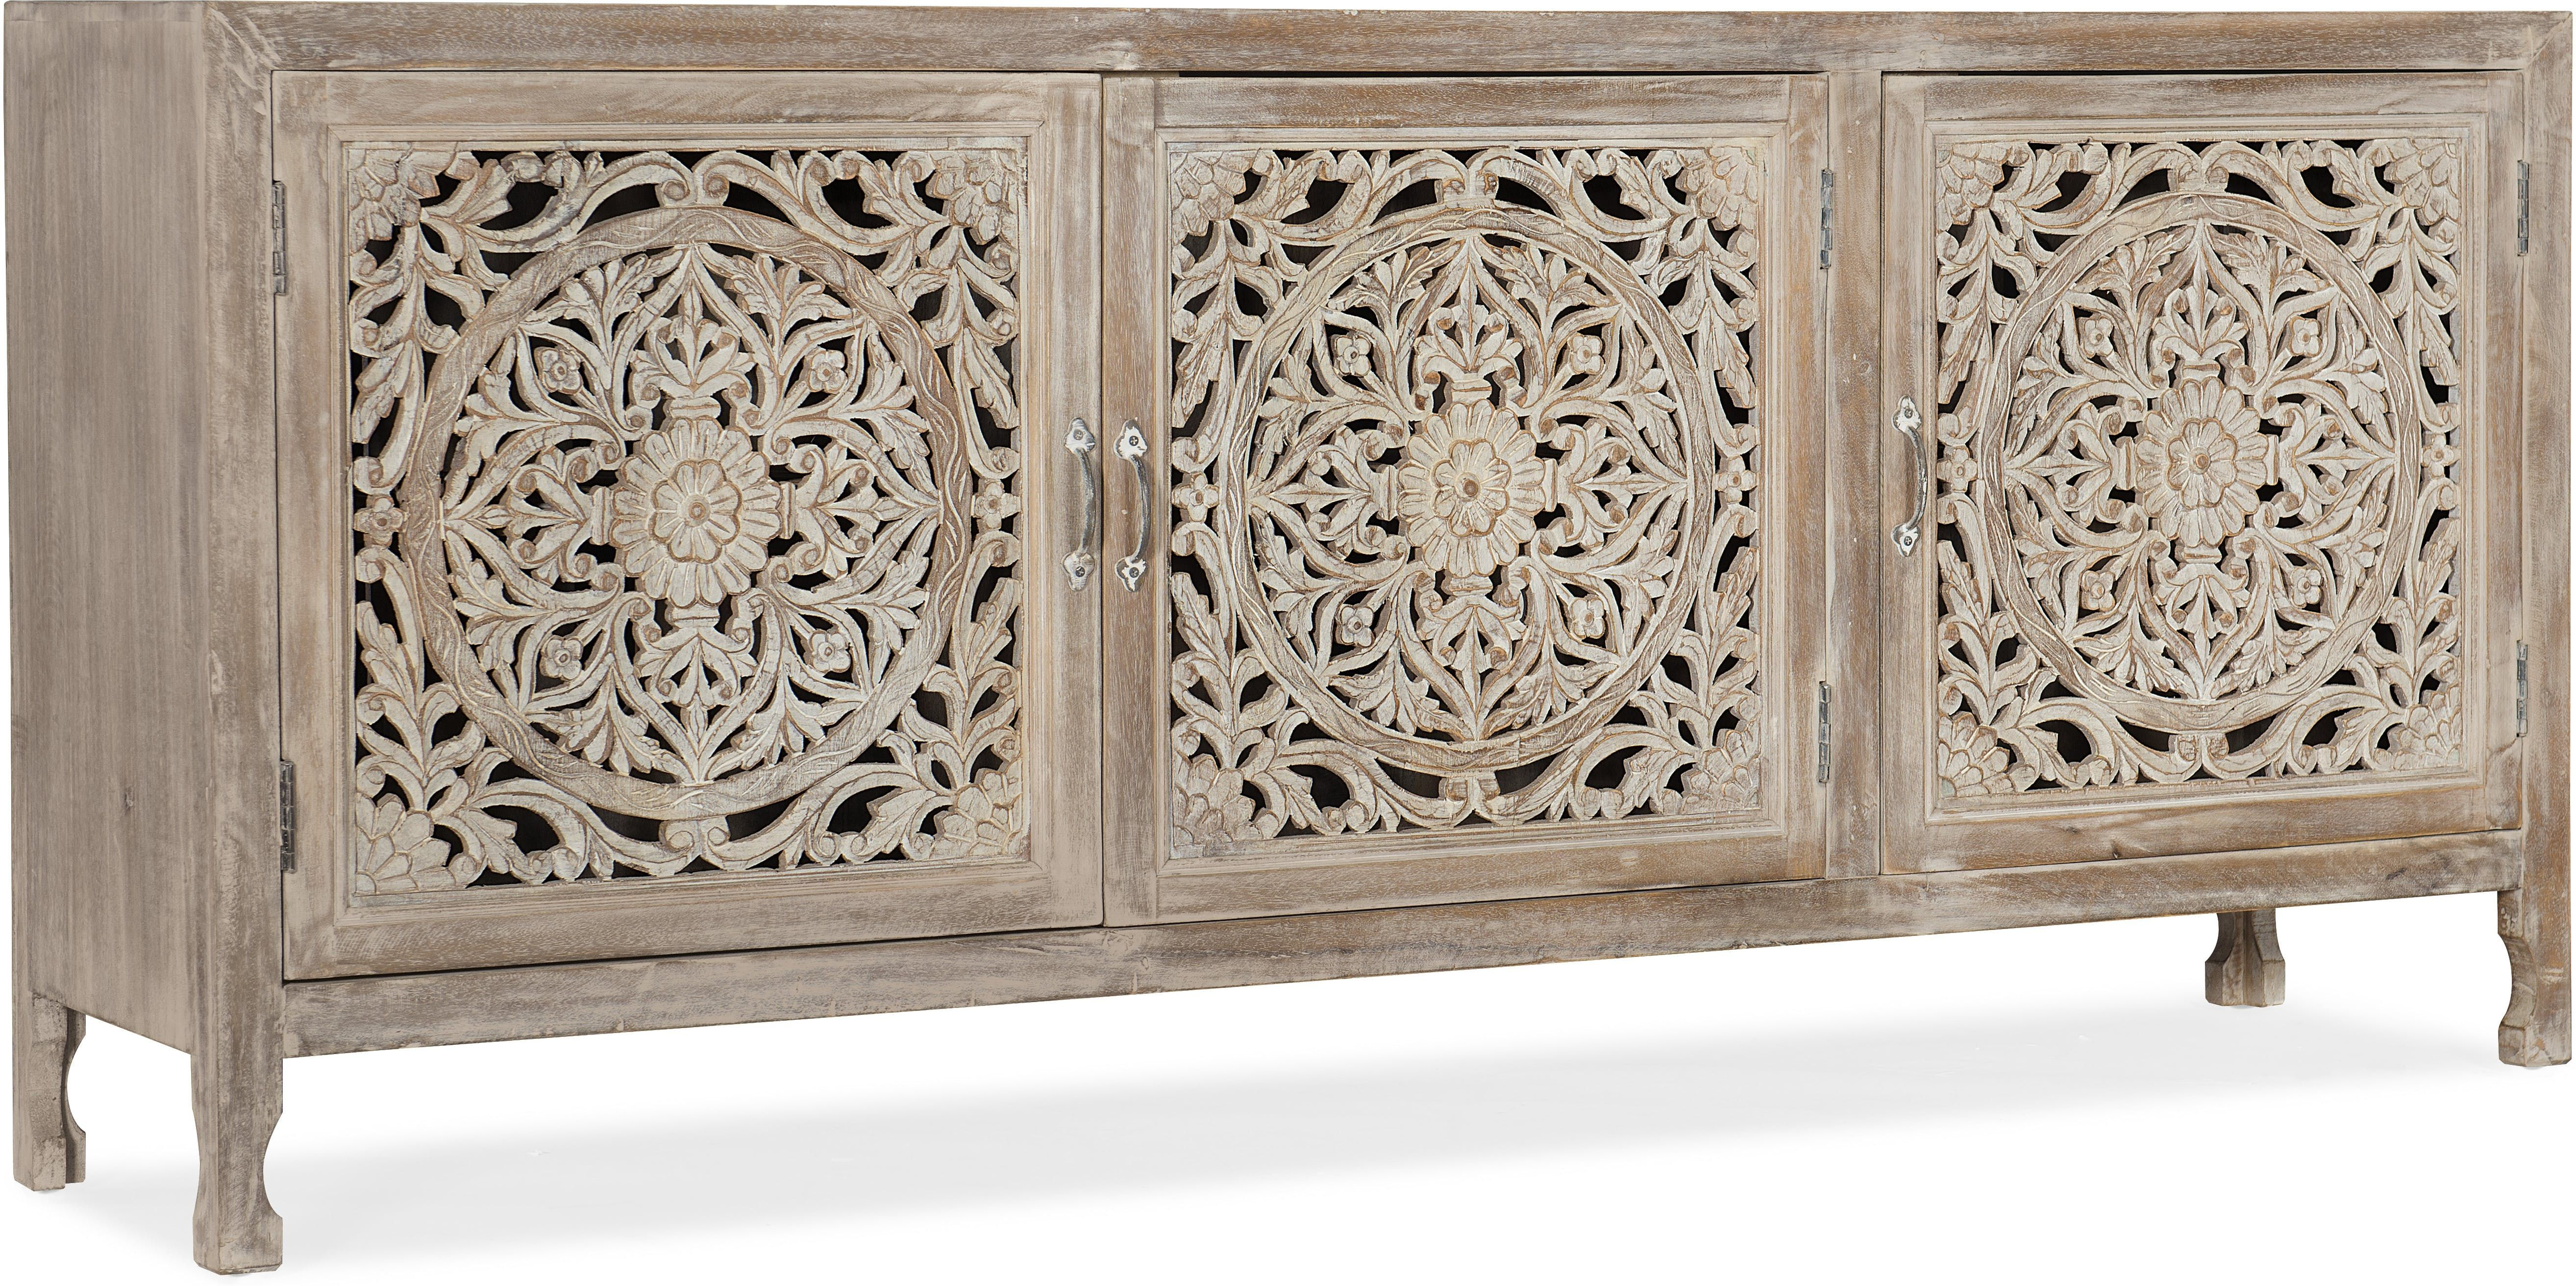 Hooker Furniture Home Entertainment Entertainment Console Throughout Deville Russelle Sideboards (View 15 of 30)